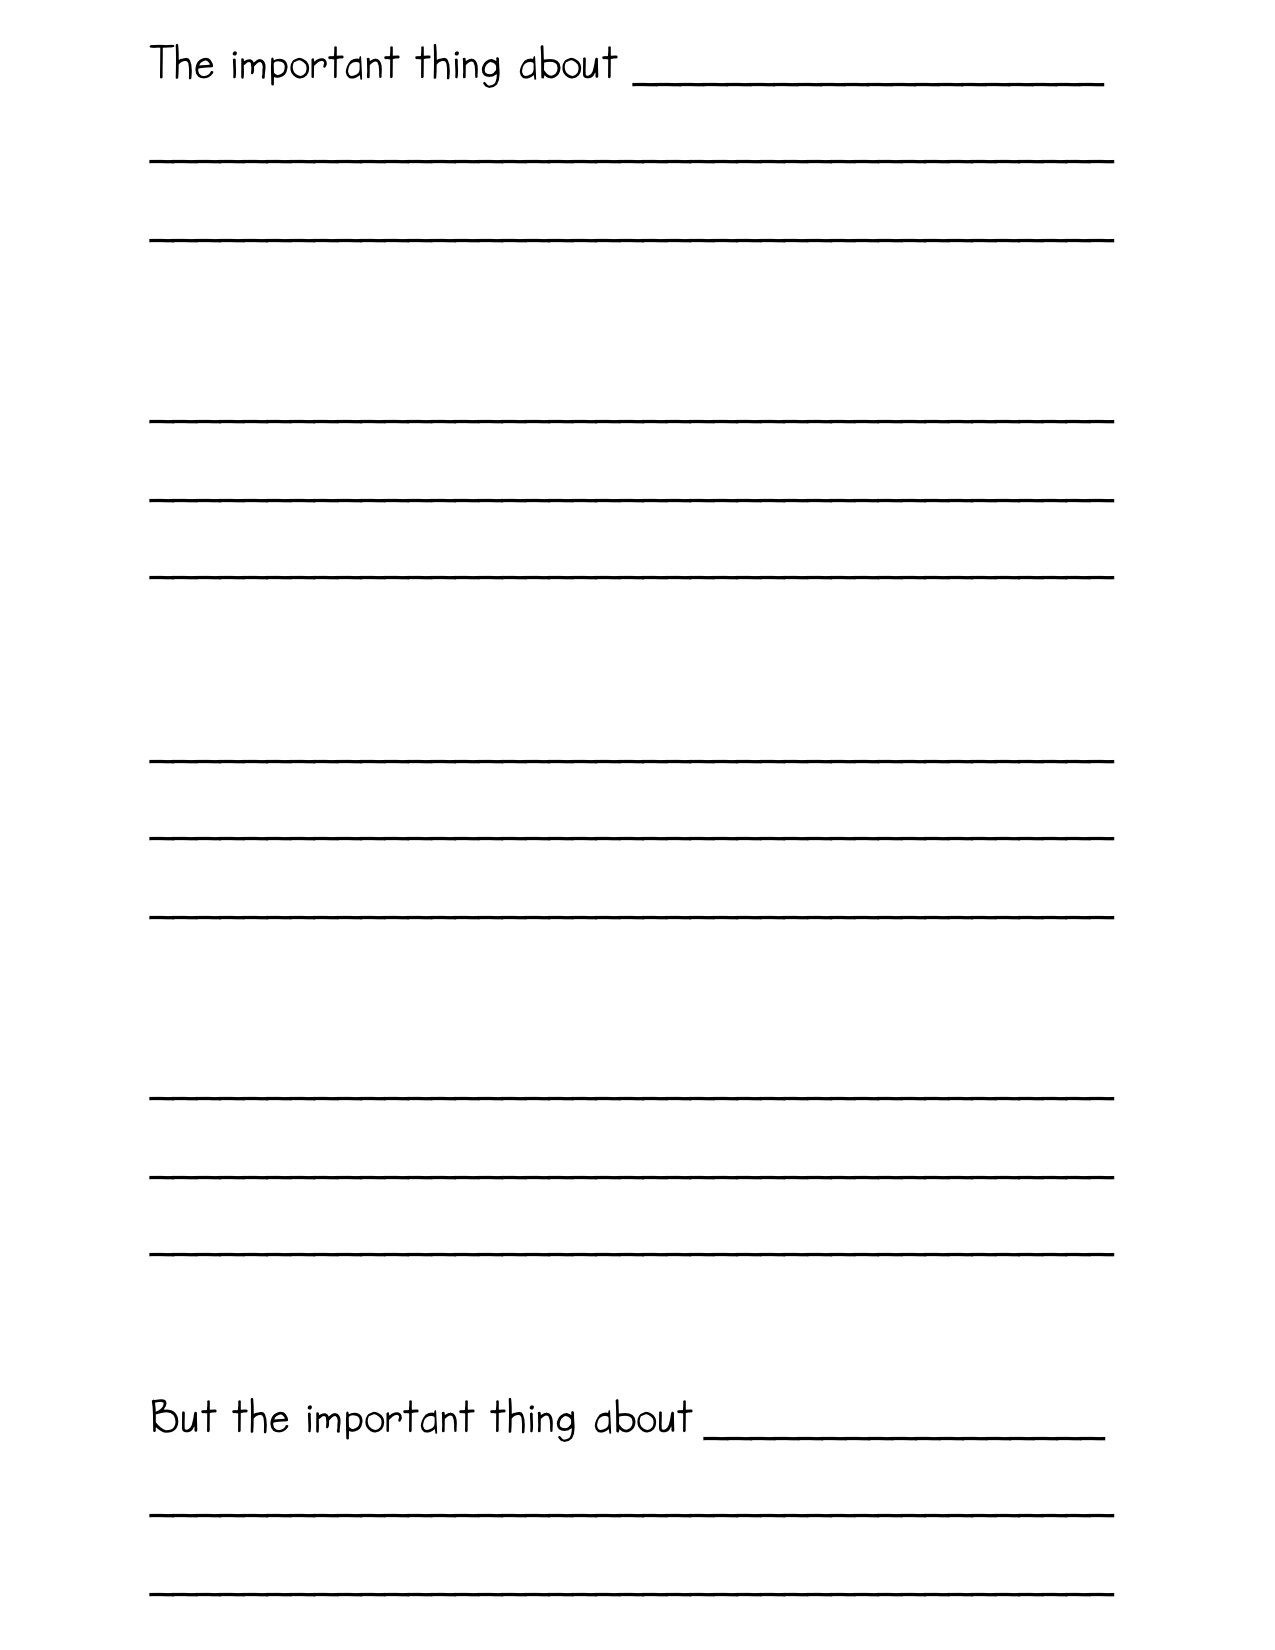 The Important Book | Pinterest | Template, Writing problems and Homework